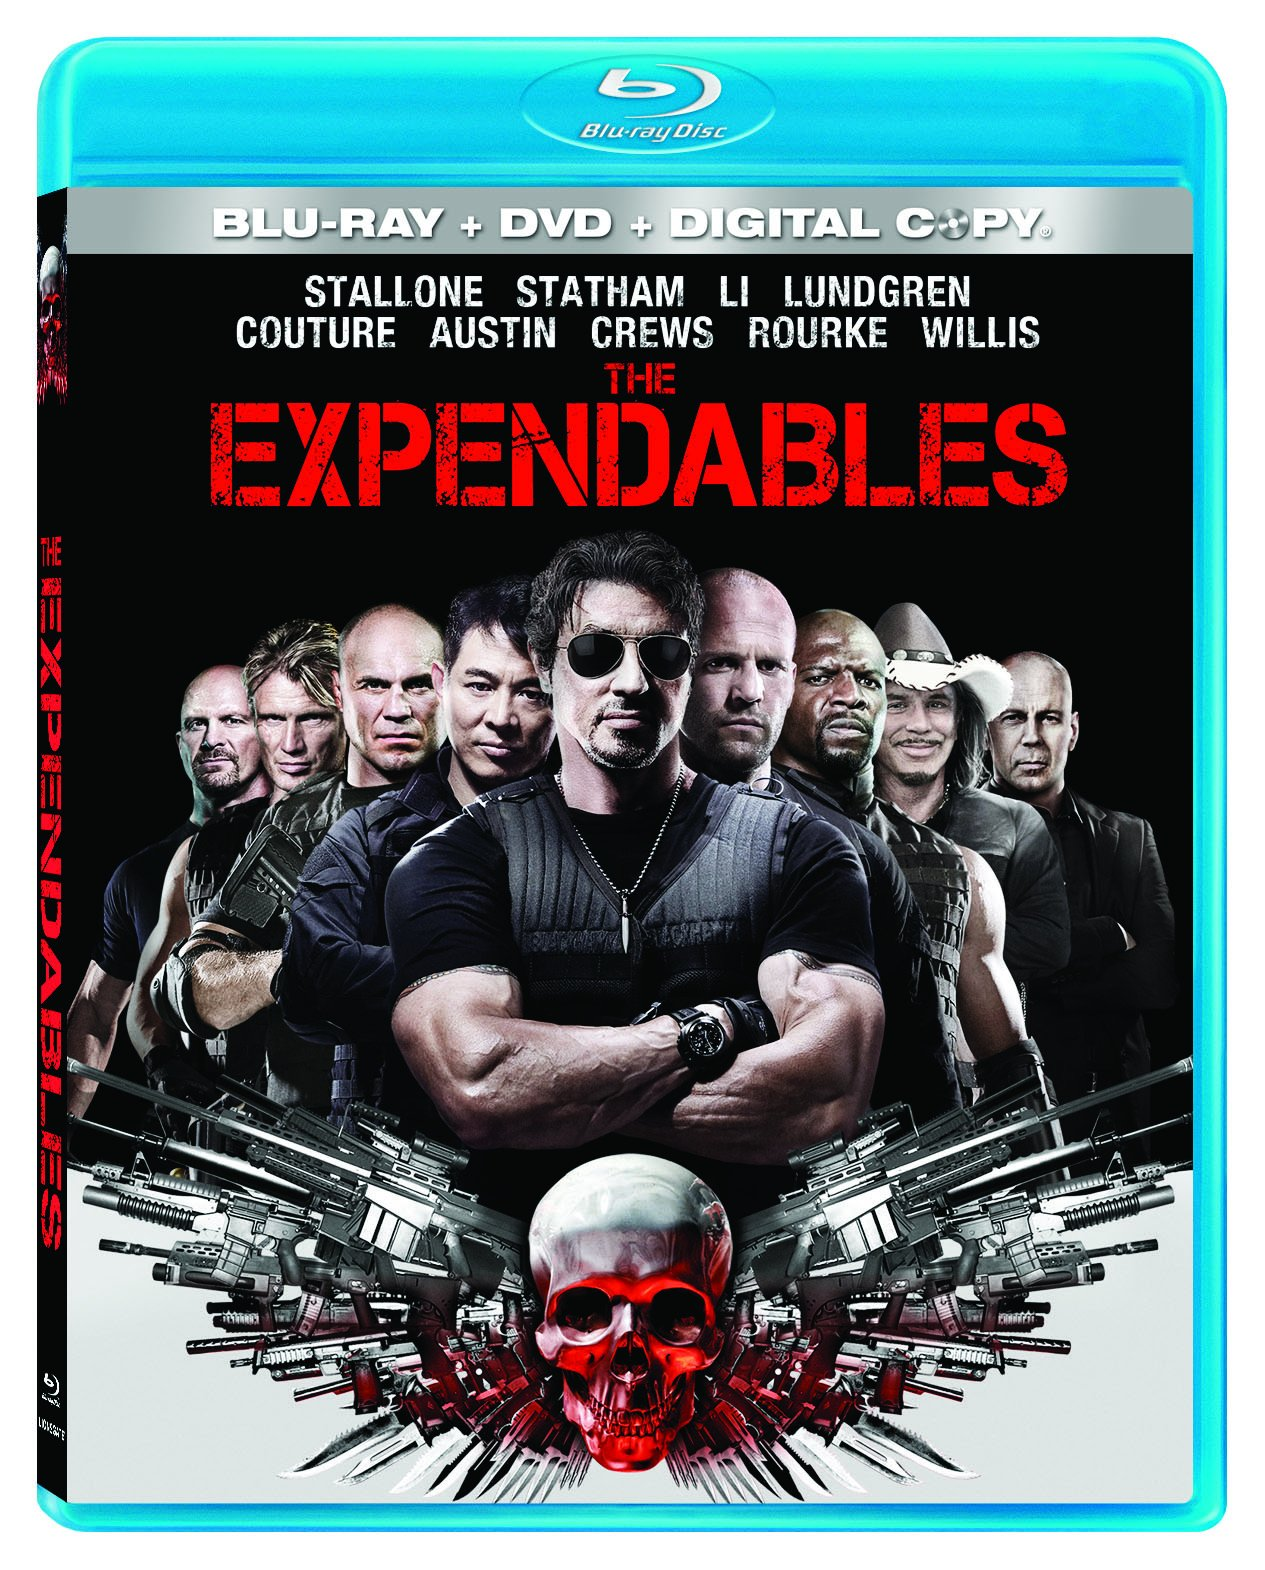 Blu-ray : The Expendables (With DVD, Digital Theater System, Widescreen, Digital Copy, )